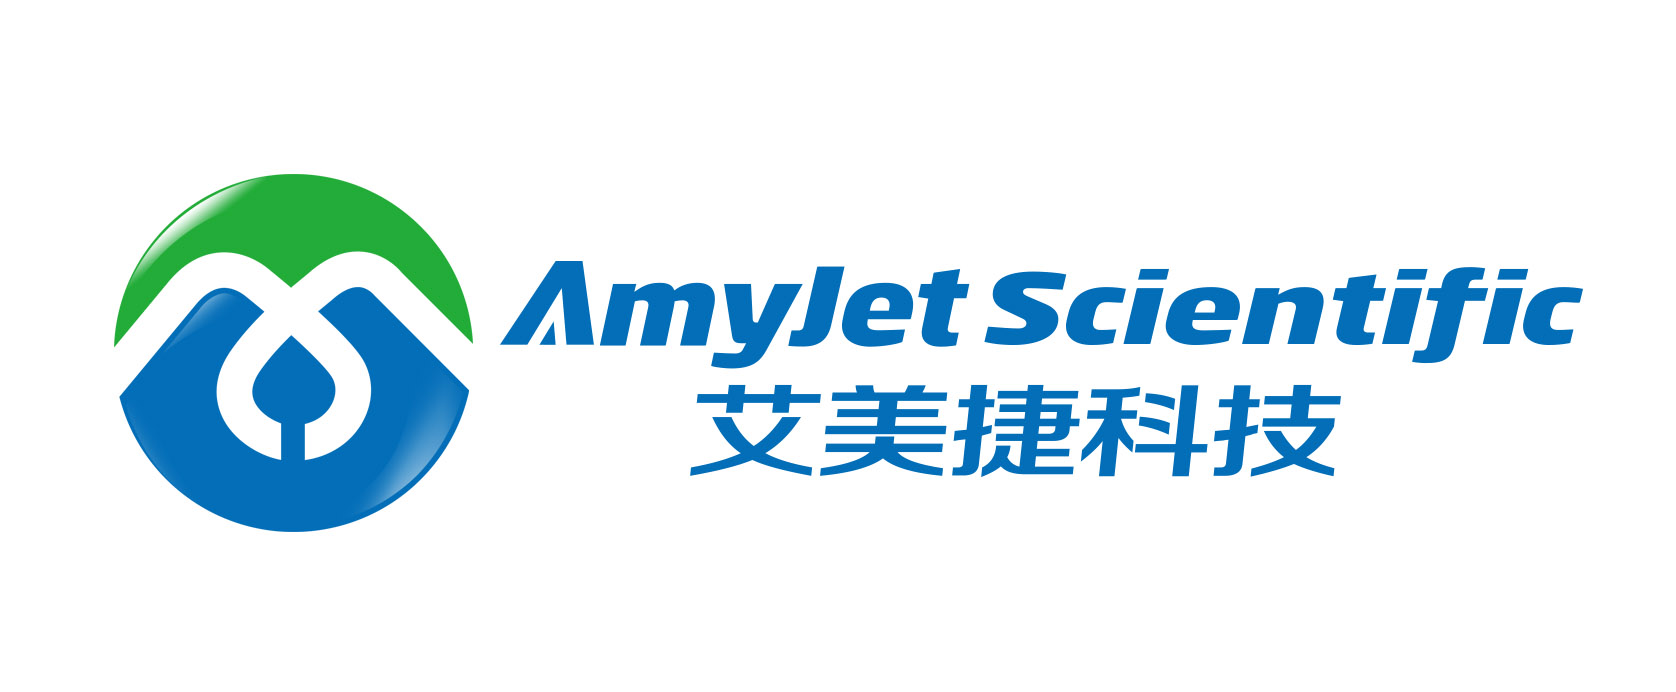 Amyjet Scientific Inc.